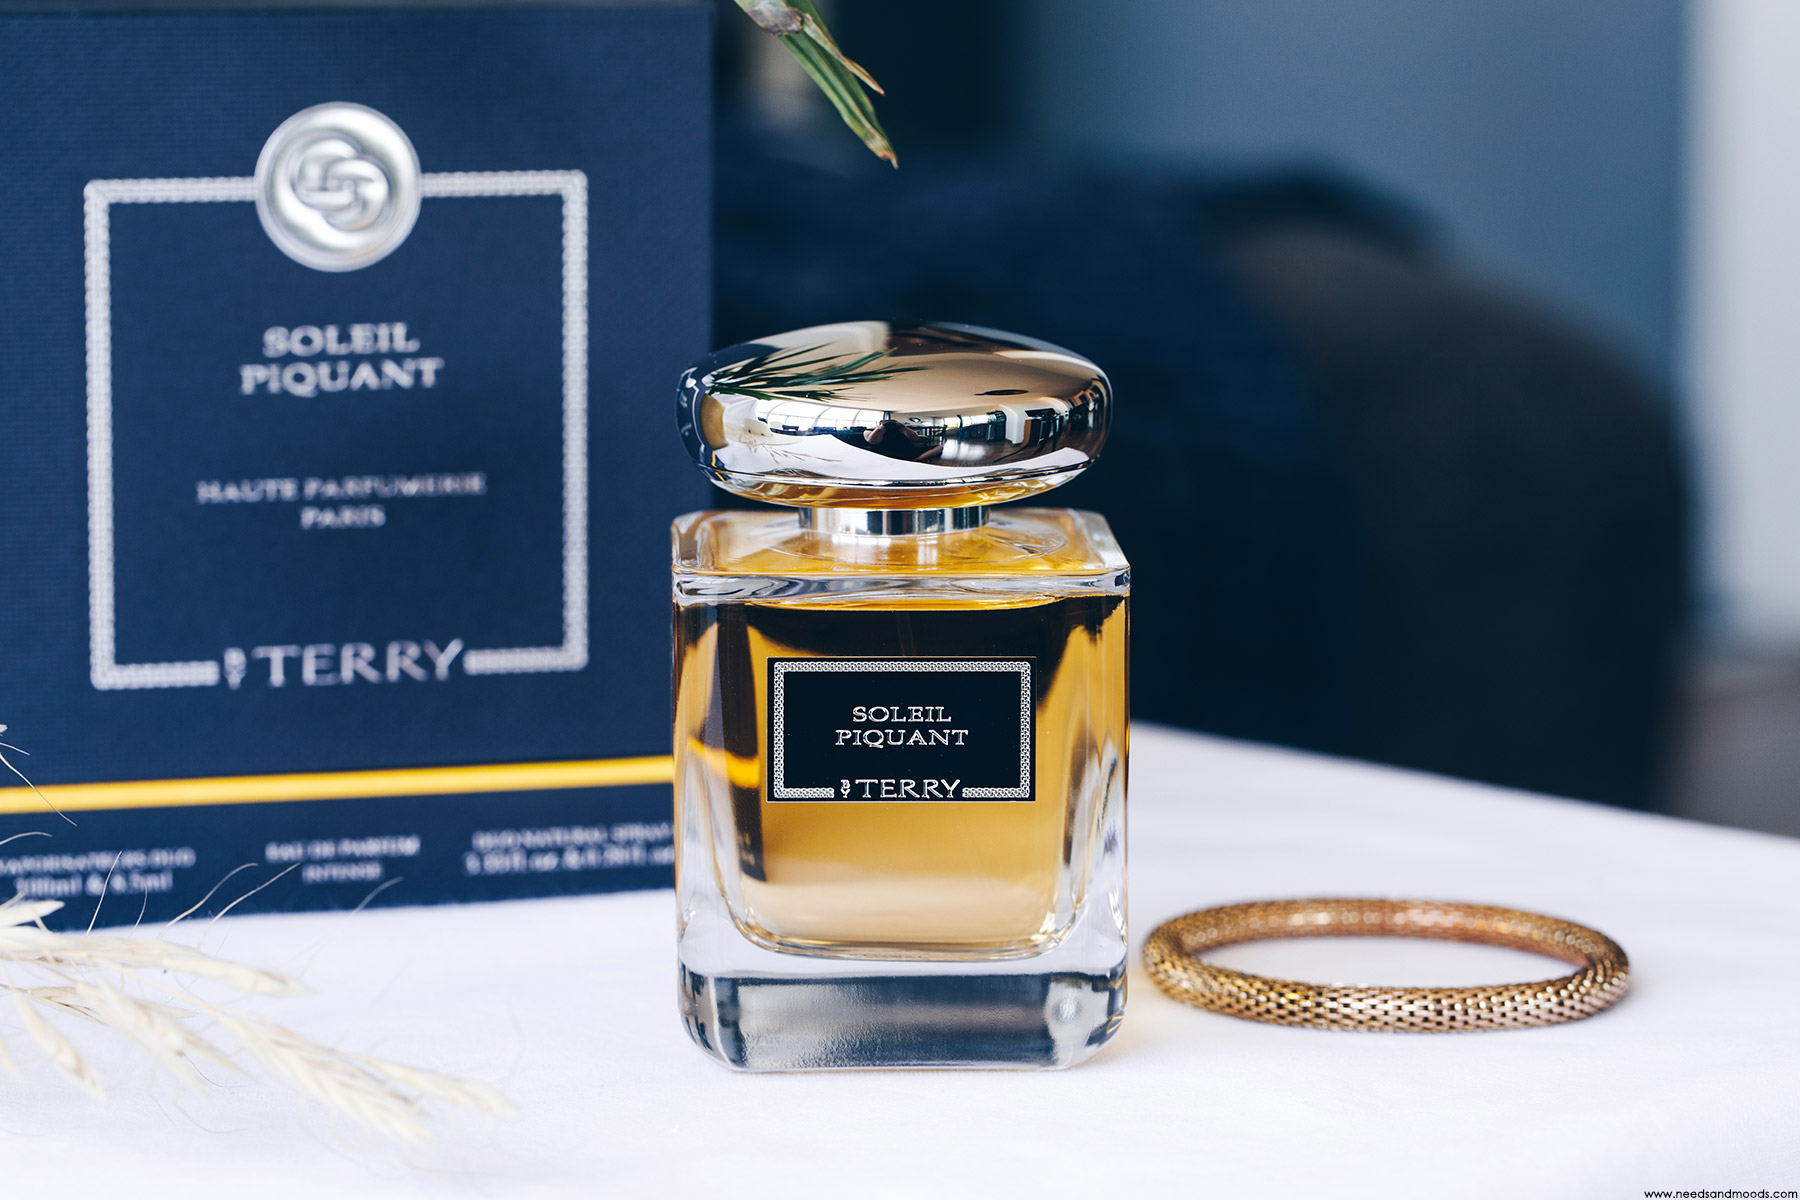 by terry parfum soleil piquant